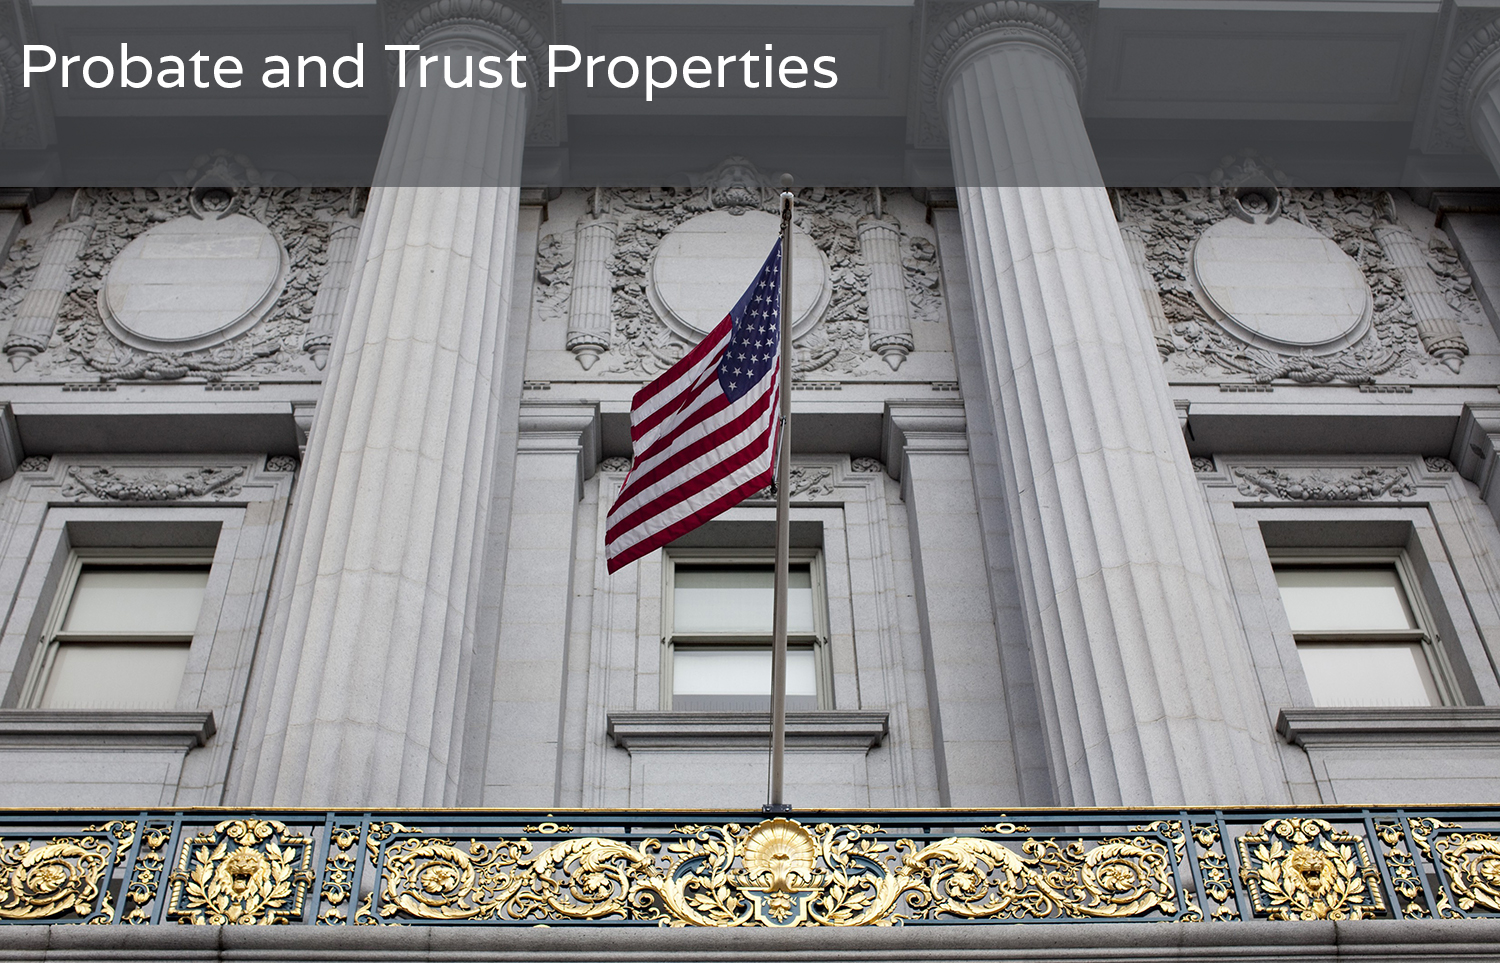 Probate and Trust Properties